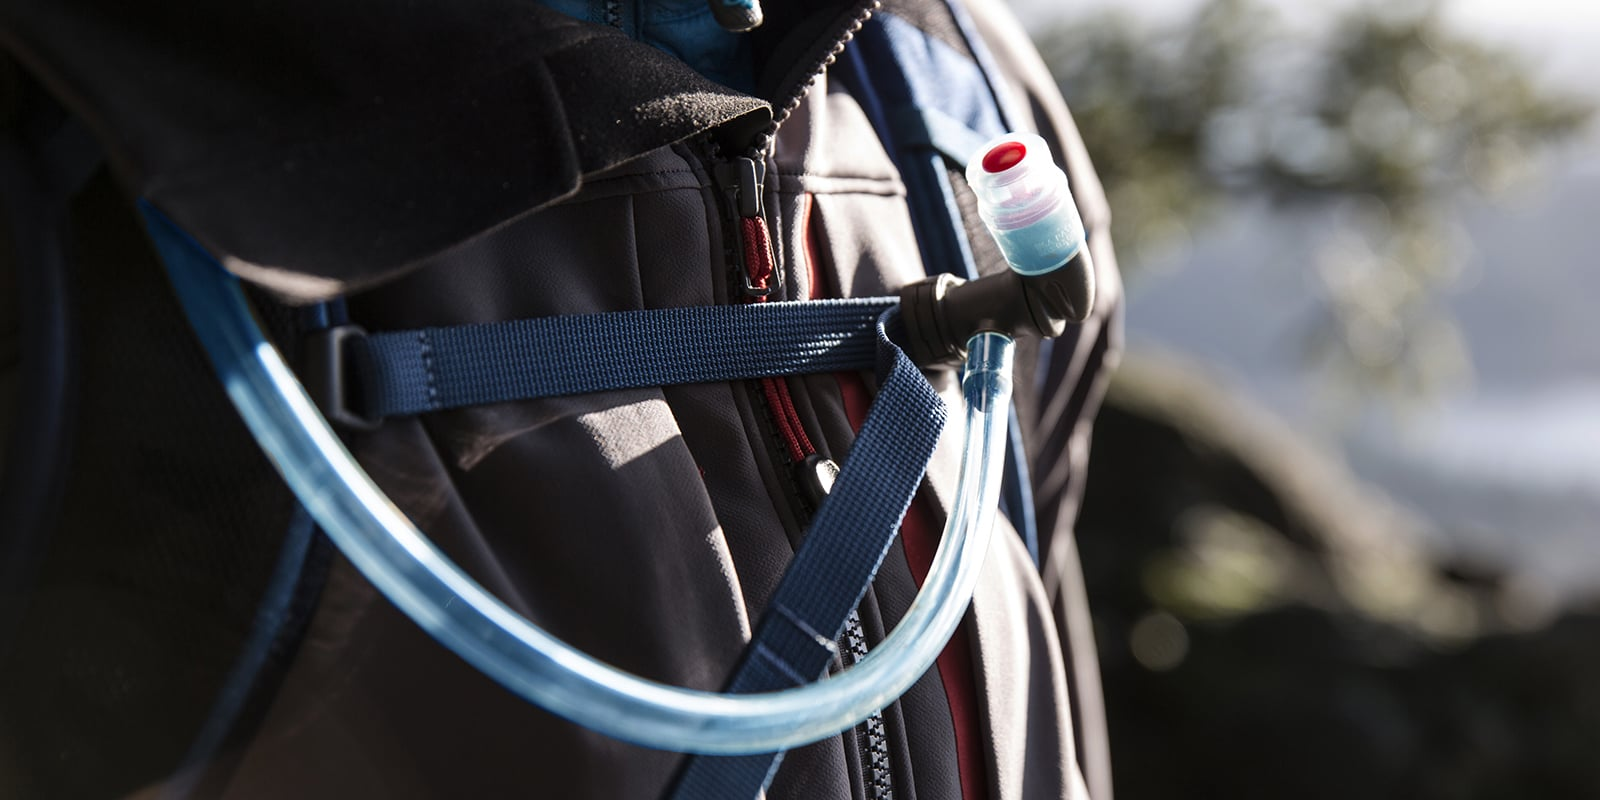 hydration pack and bladder cleaning